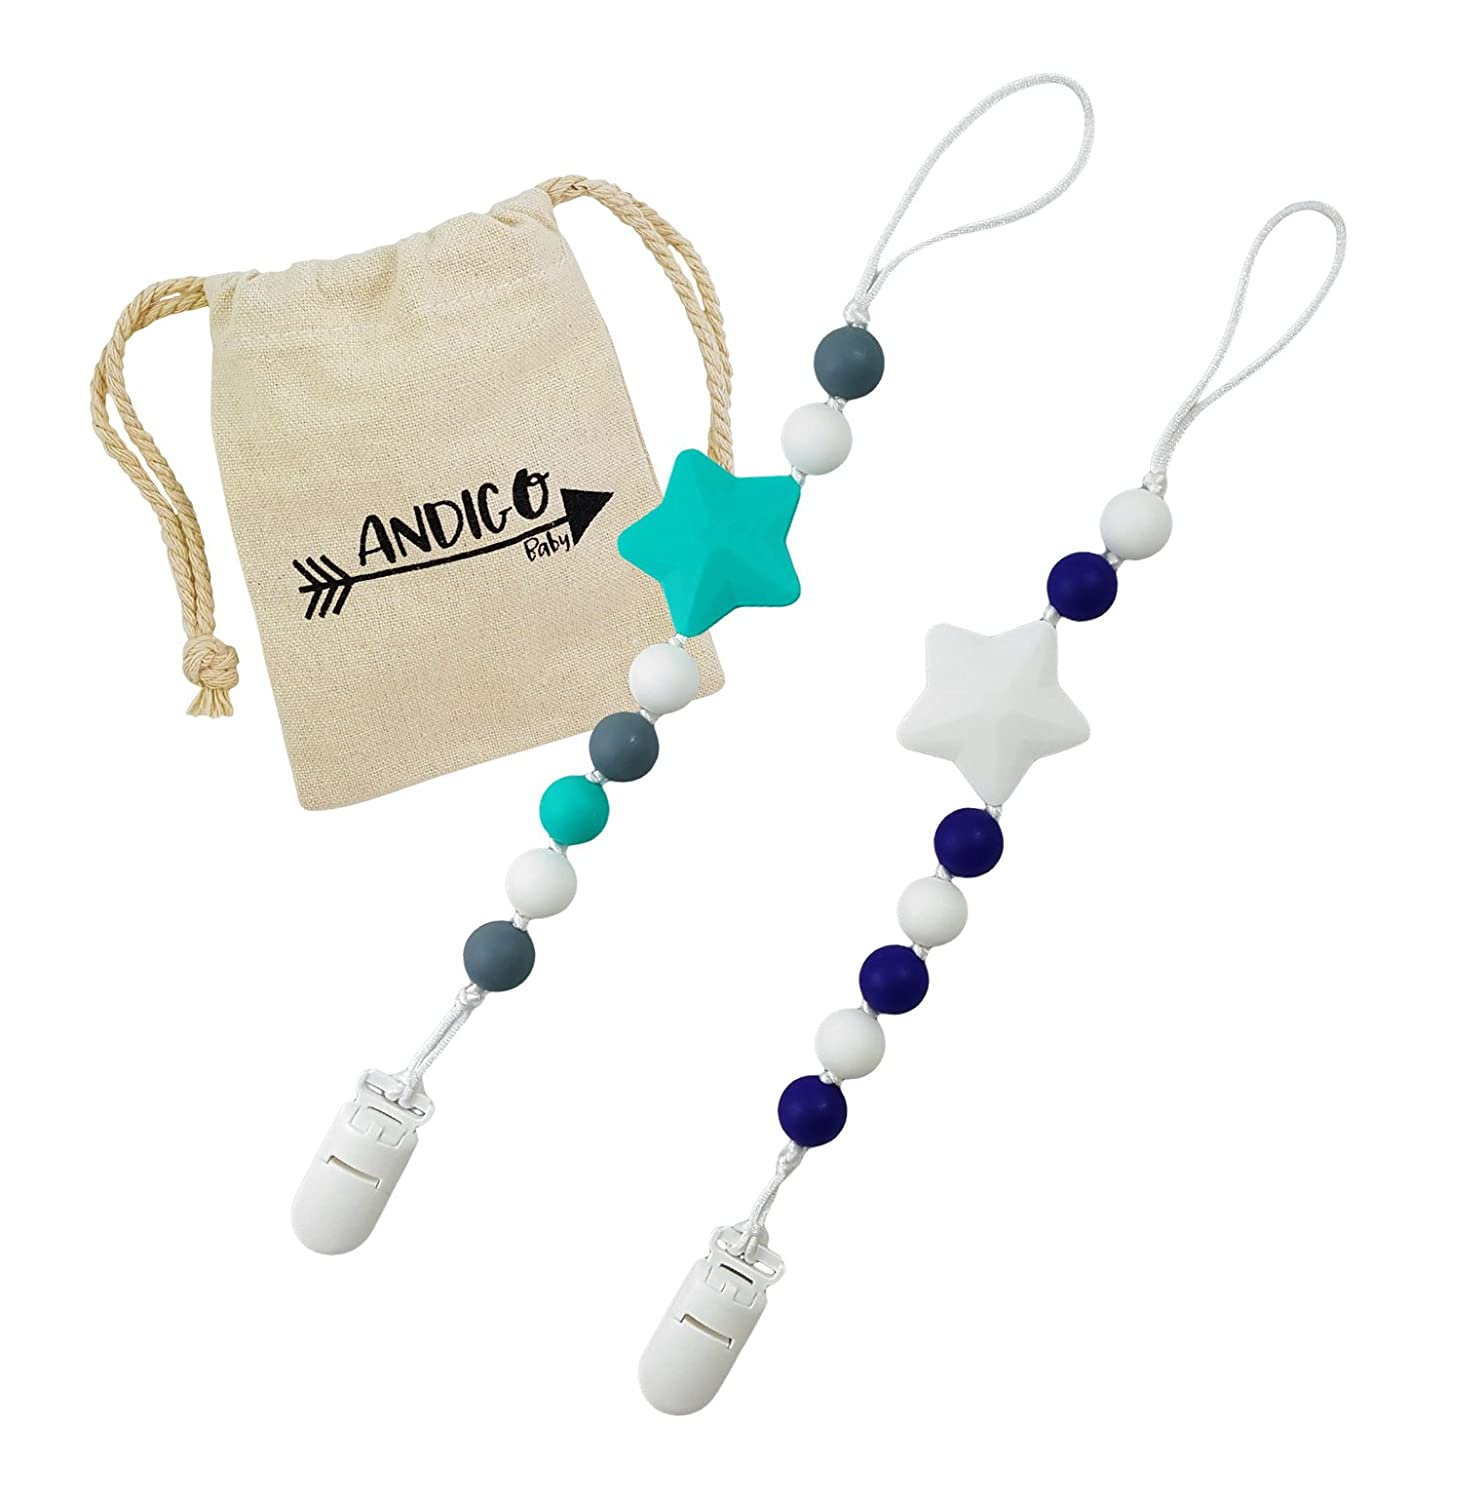 Pacifier Clip Holder - 2 in 1 - with Silicone Teething Beads, for Girls, Boys, Unisex, Set of Two, Compatible with MAM, Soothie, NUK, Tommee Tippee and Other Pacifiers - Navy/Turquoise ANDIGO